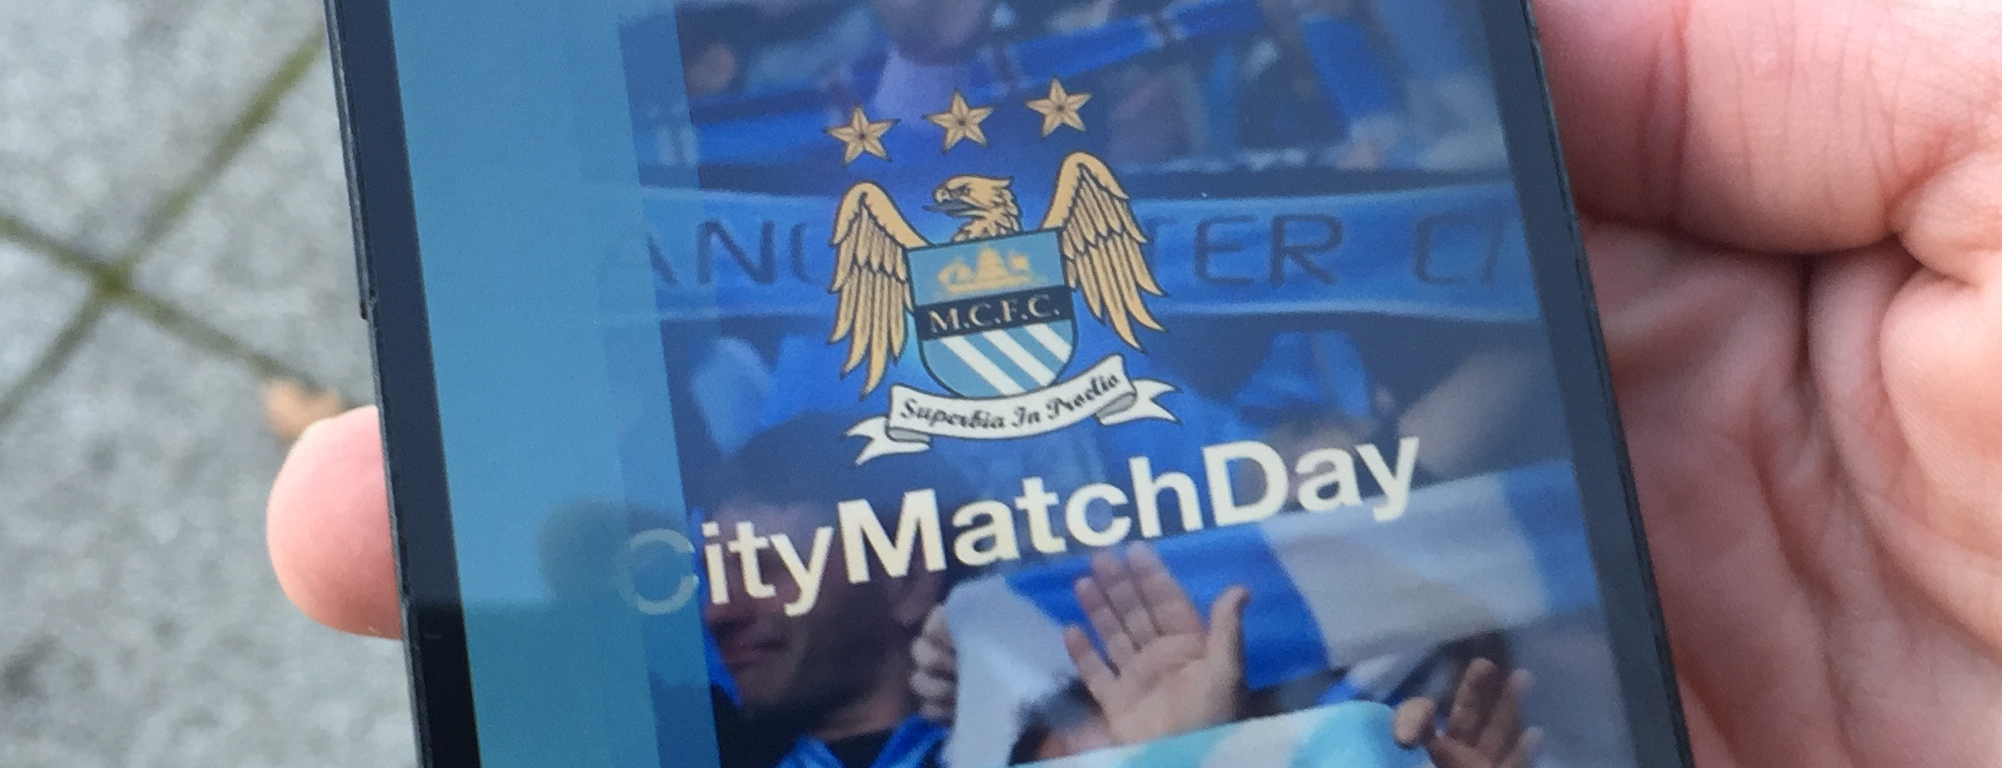 Behind the Scenes of Manchester City's Ambitious New App